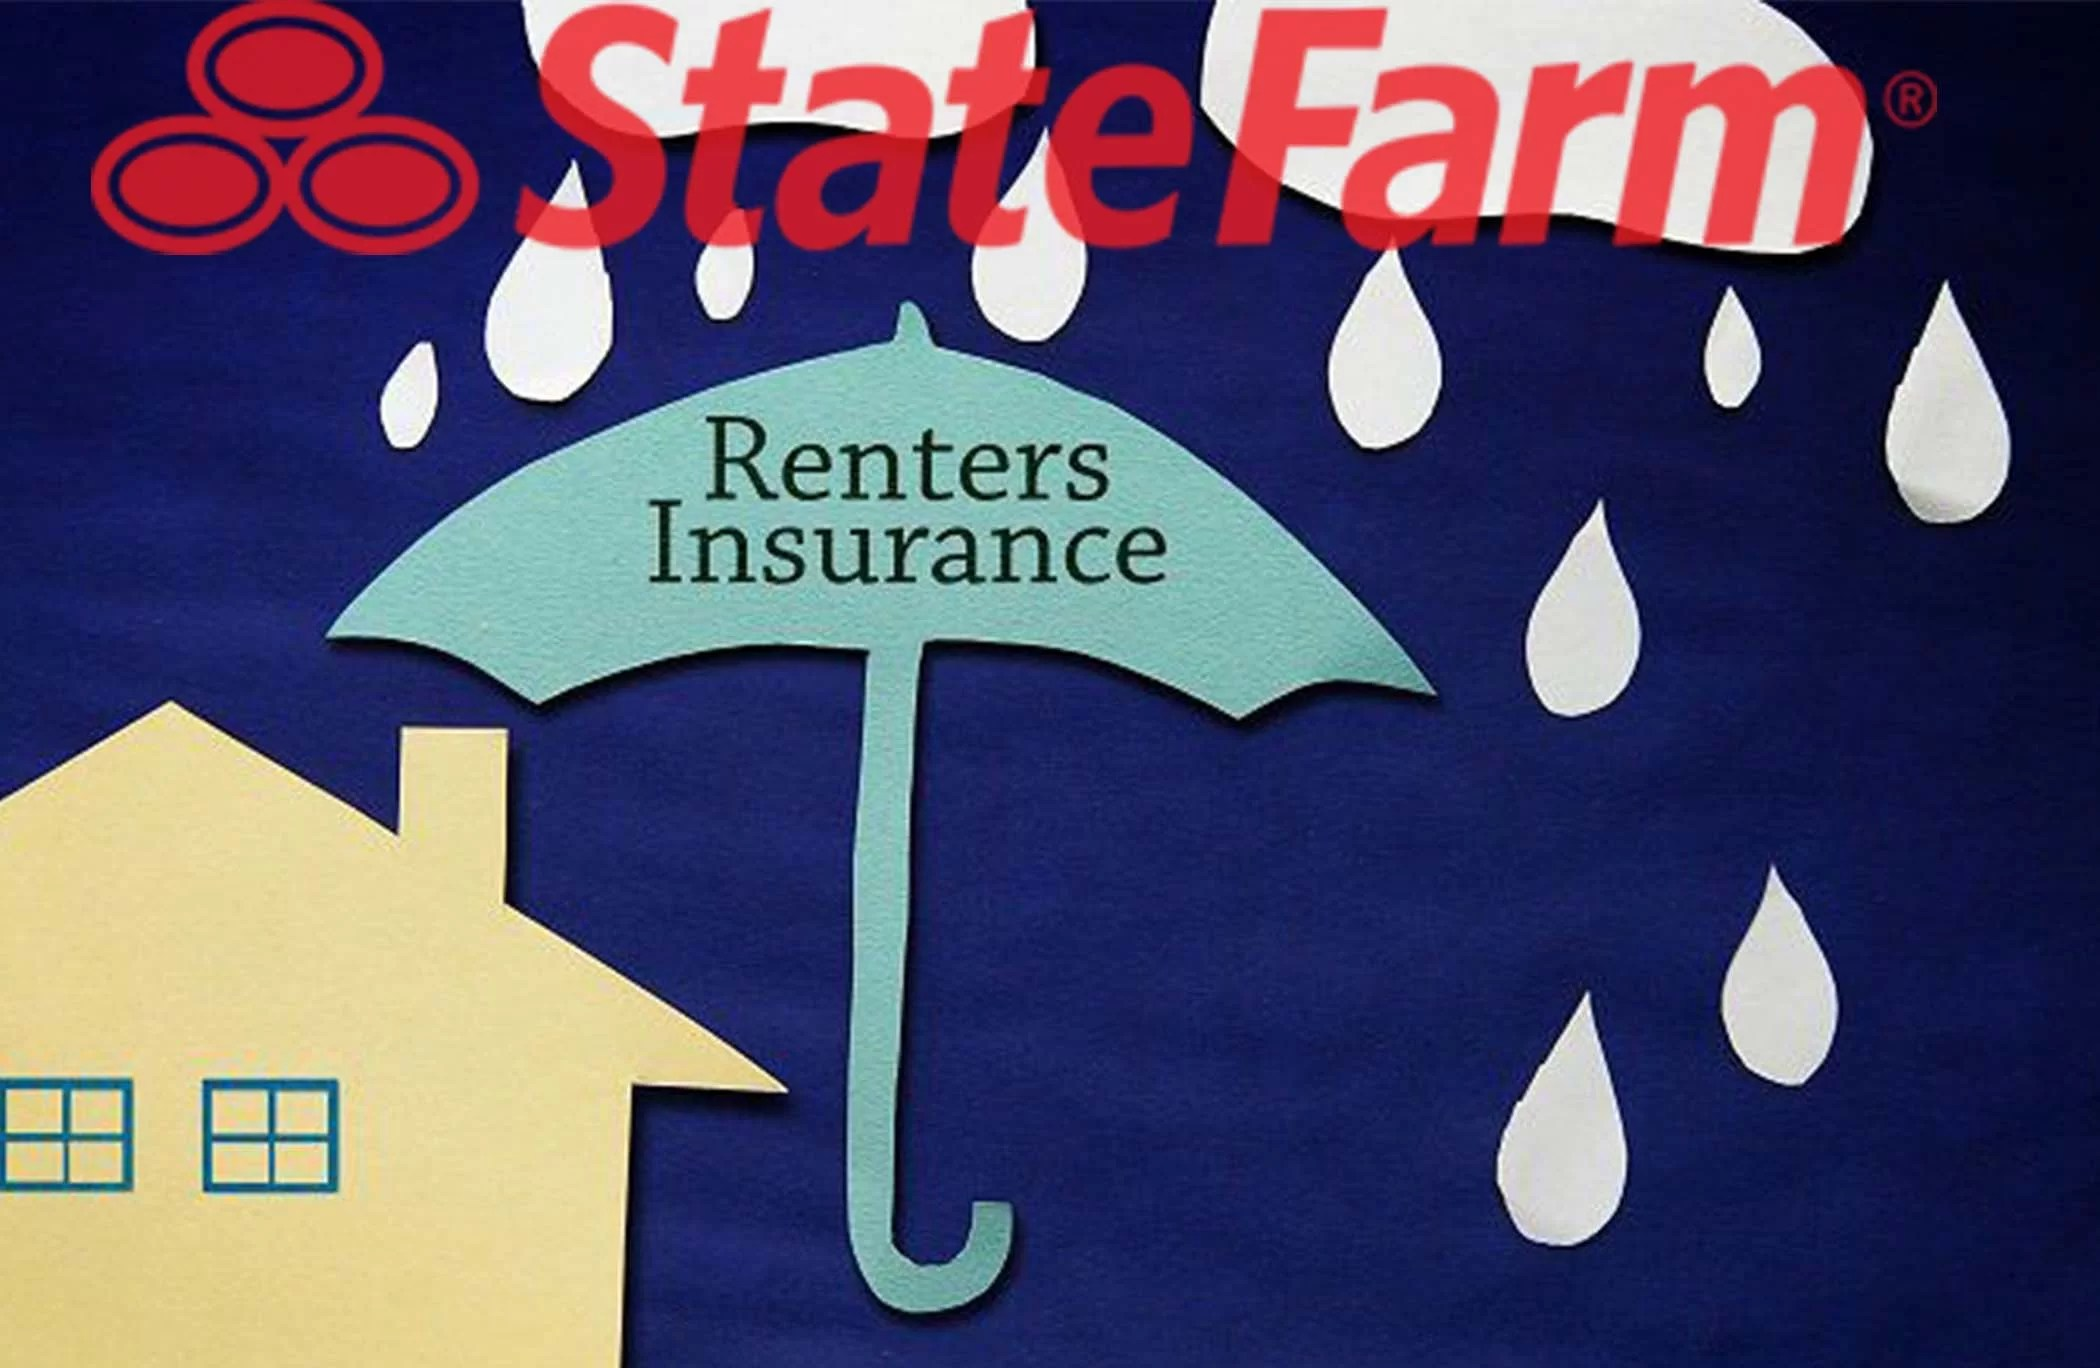 Here Come New Ideas for State Farm Renters Insurance